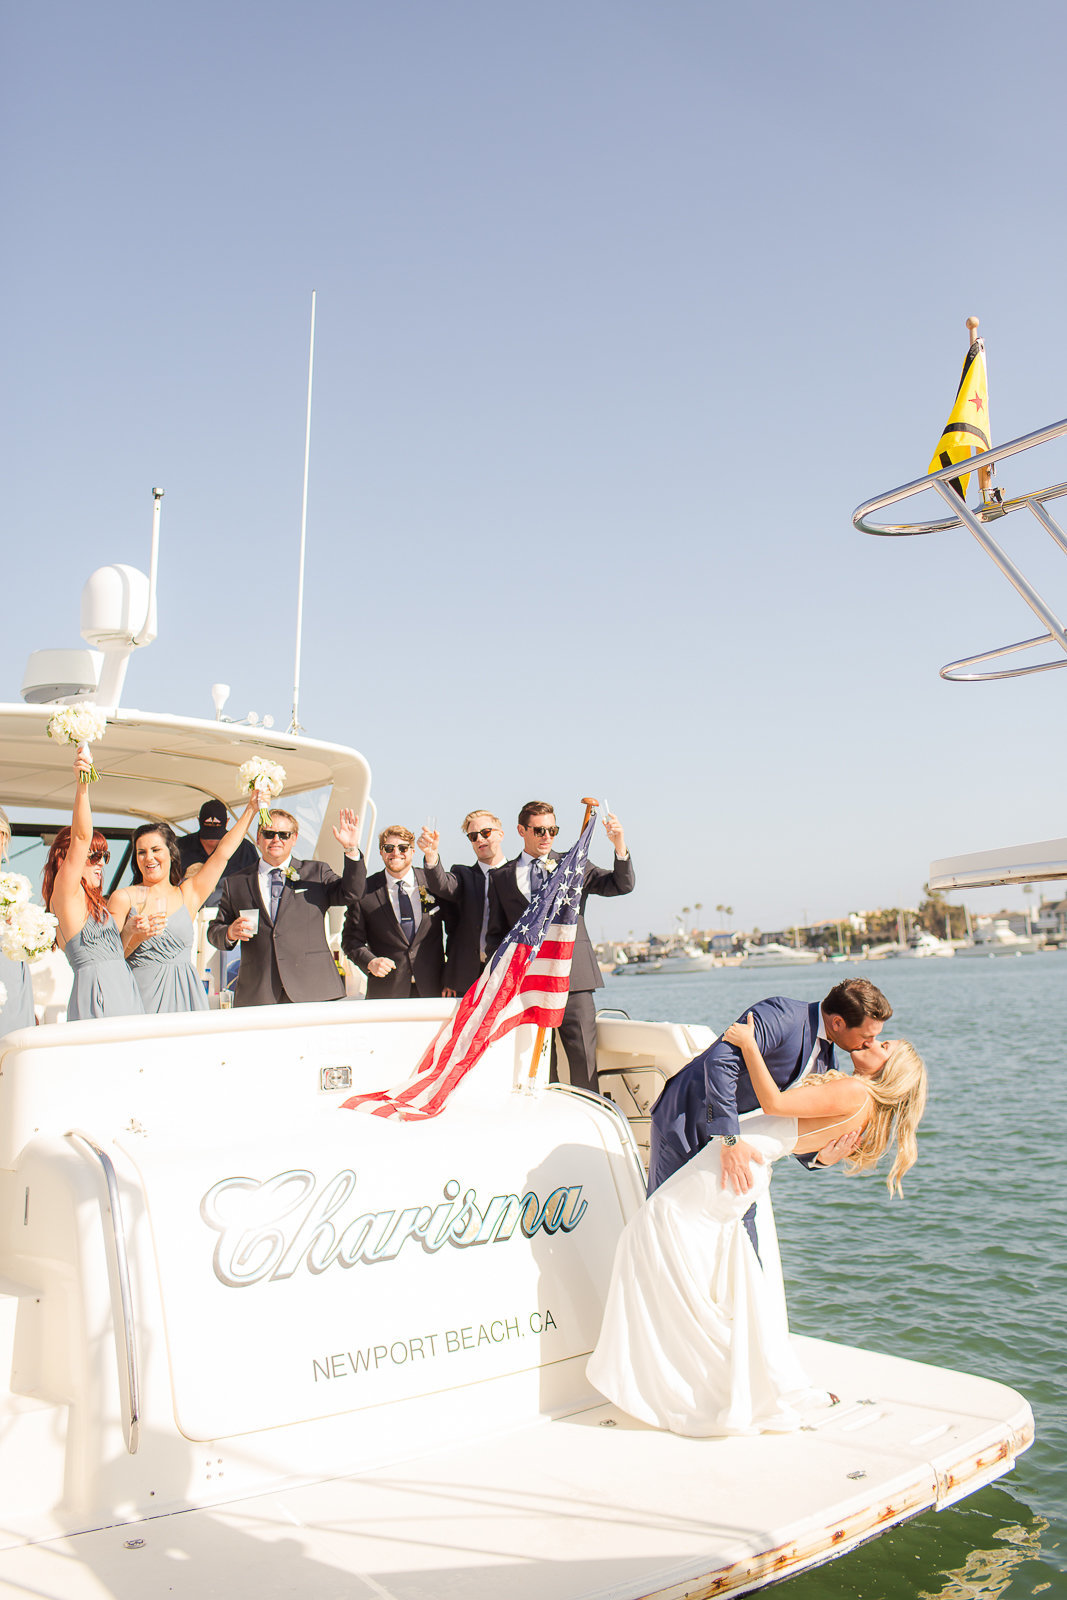 Newport Beach Caliornia Destination Wedding Theresa Bridget Photography-47